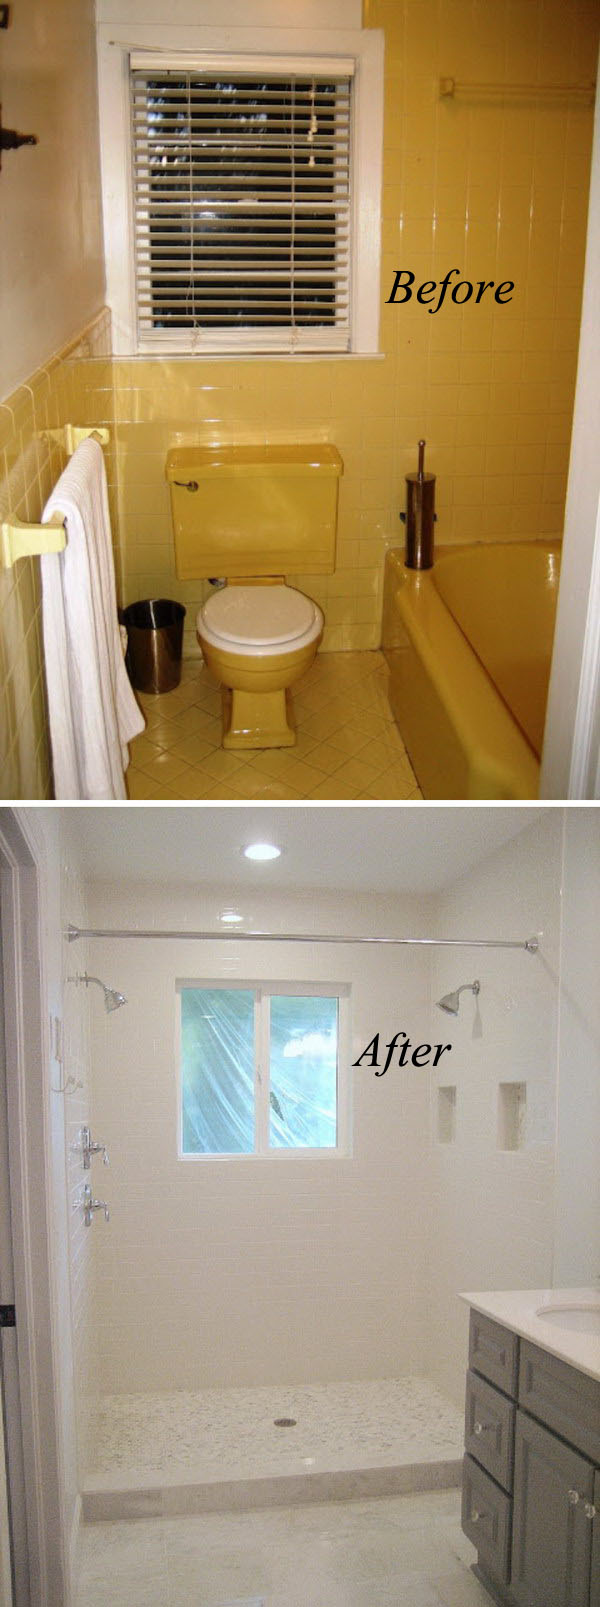 33 Inspirational Small Bathroom Remodel Before and After ... on Small Bathroom Renovation  id=66538